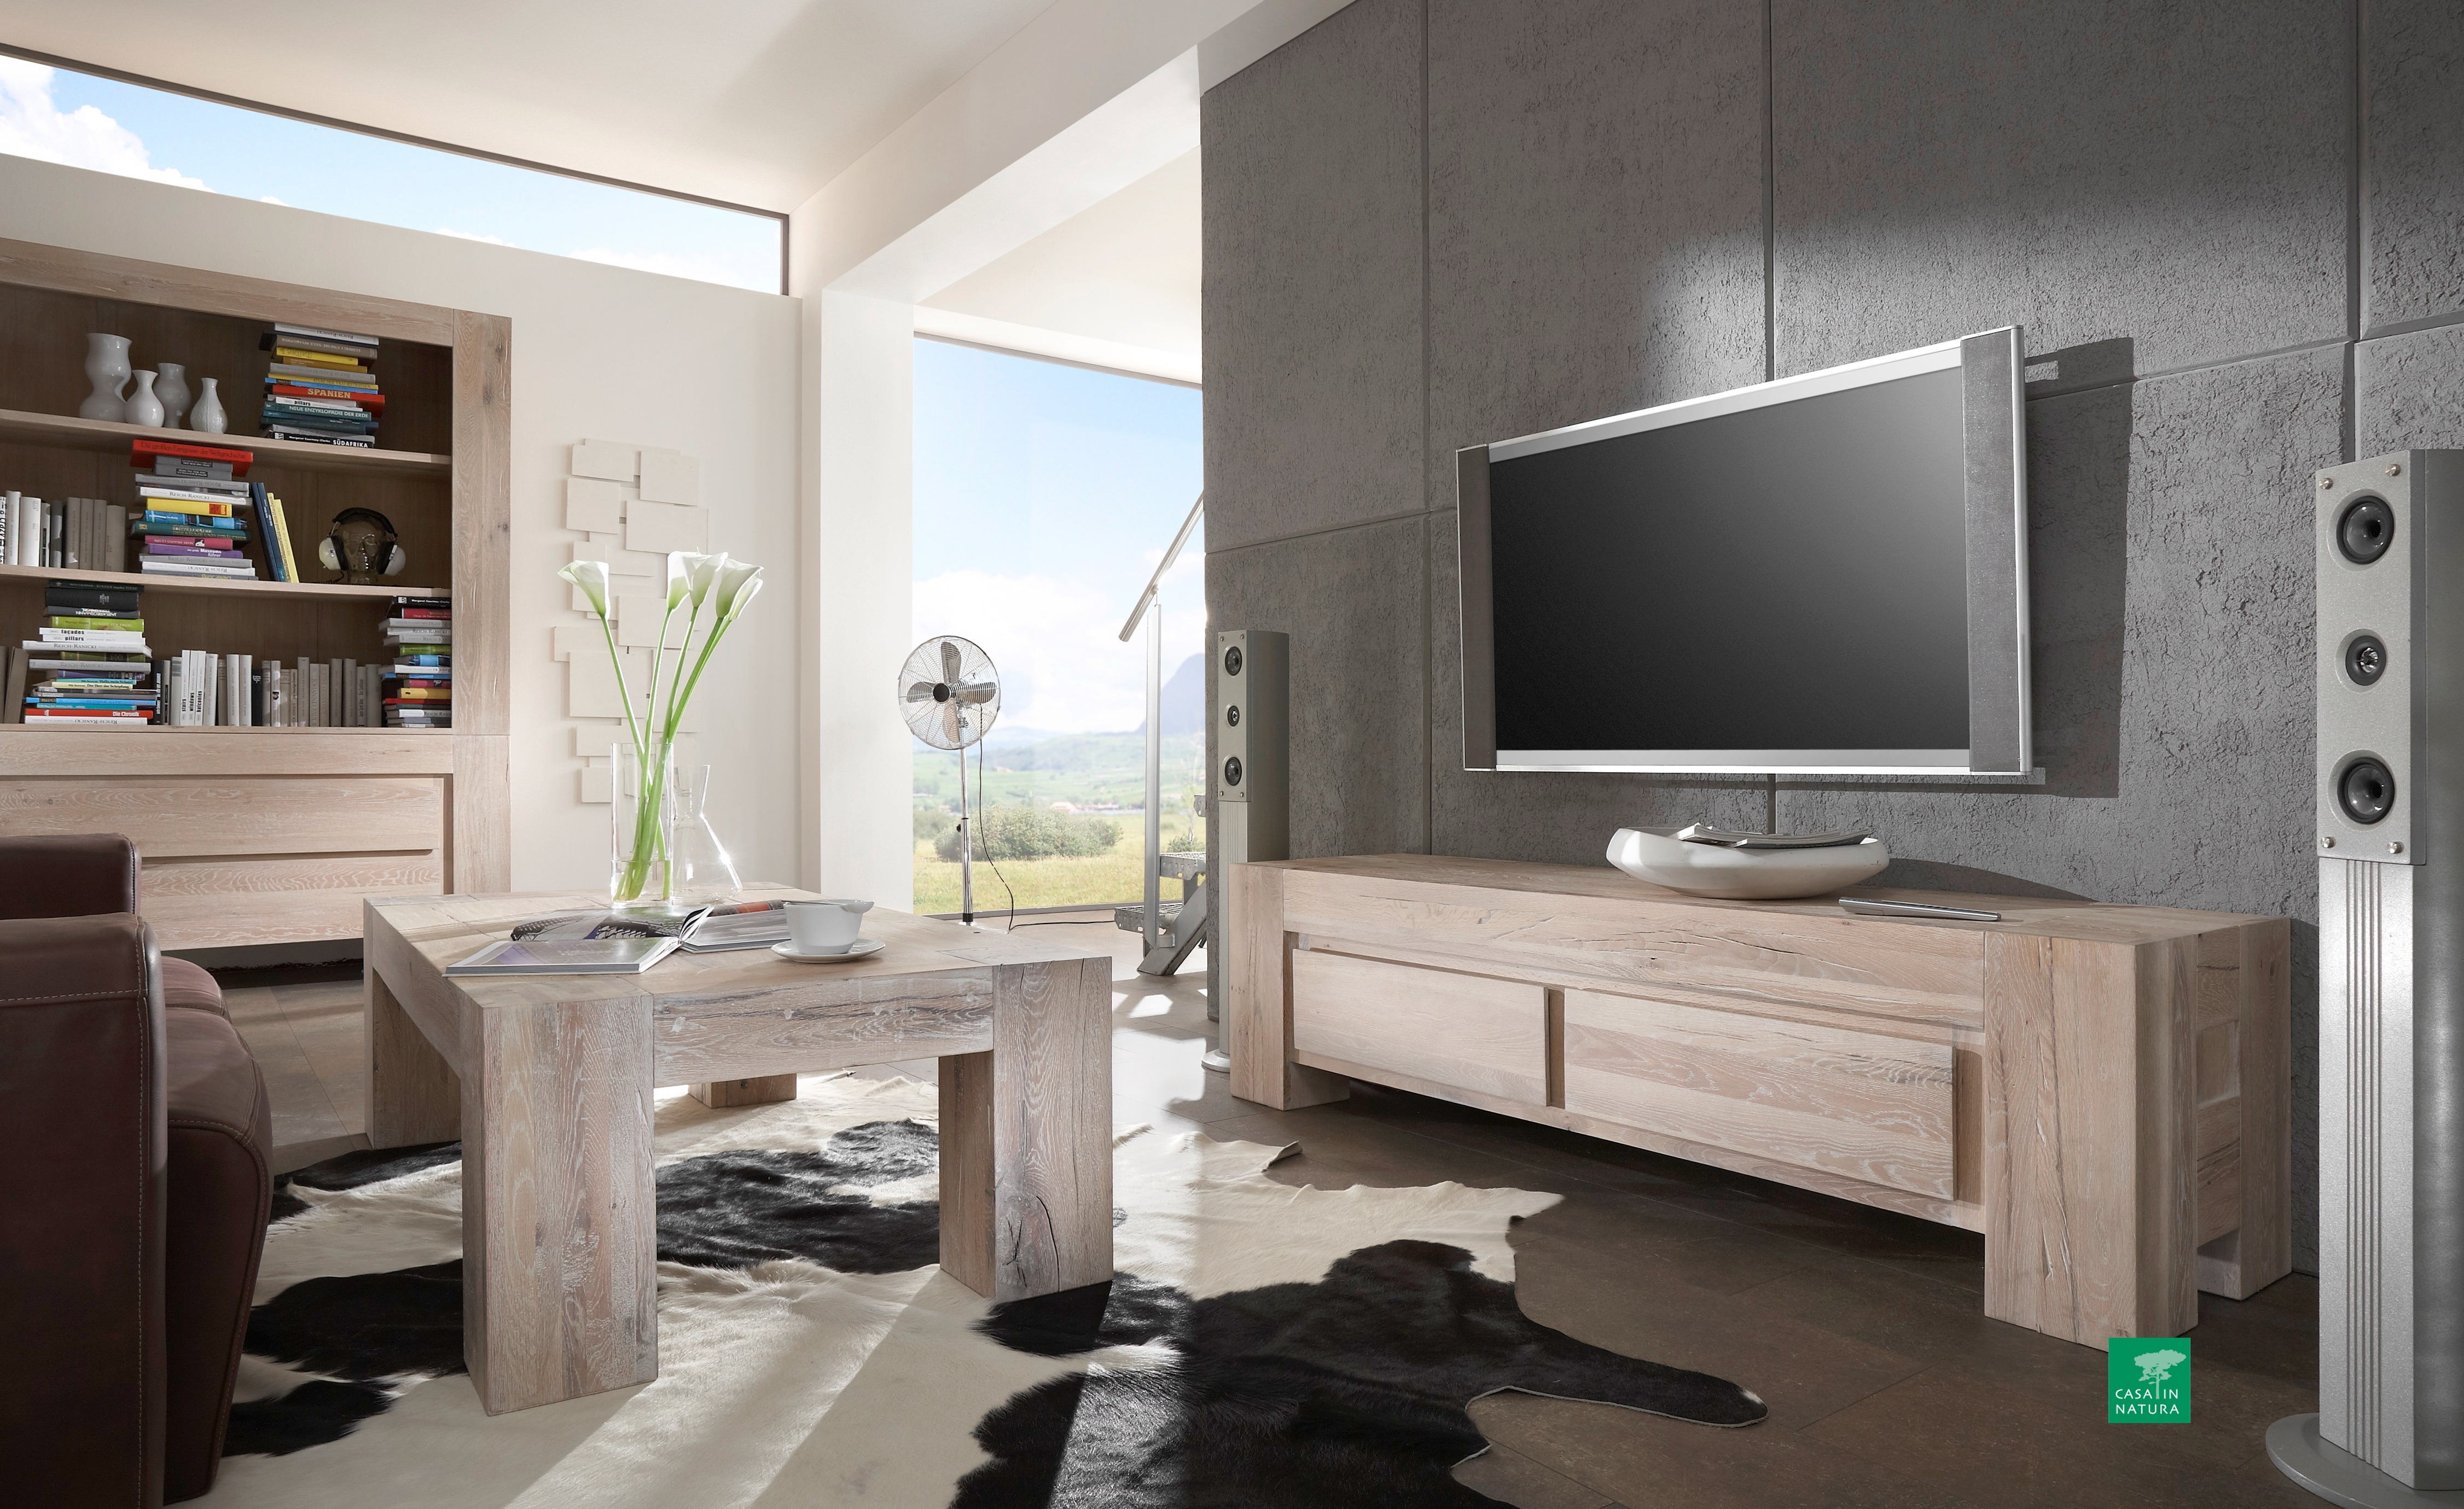 regal boston 165x220x50cm eiche wei ge lt casa innatura. Black Bedroom Furniture Sets. Home Design Ideas